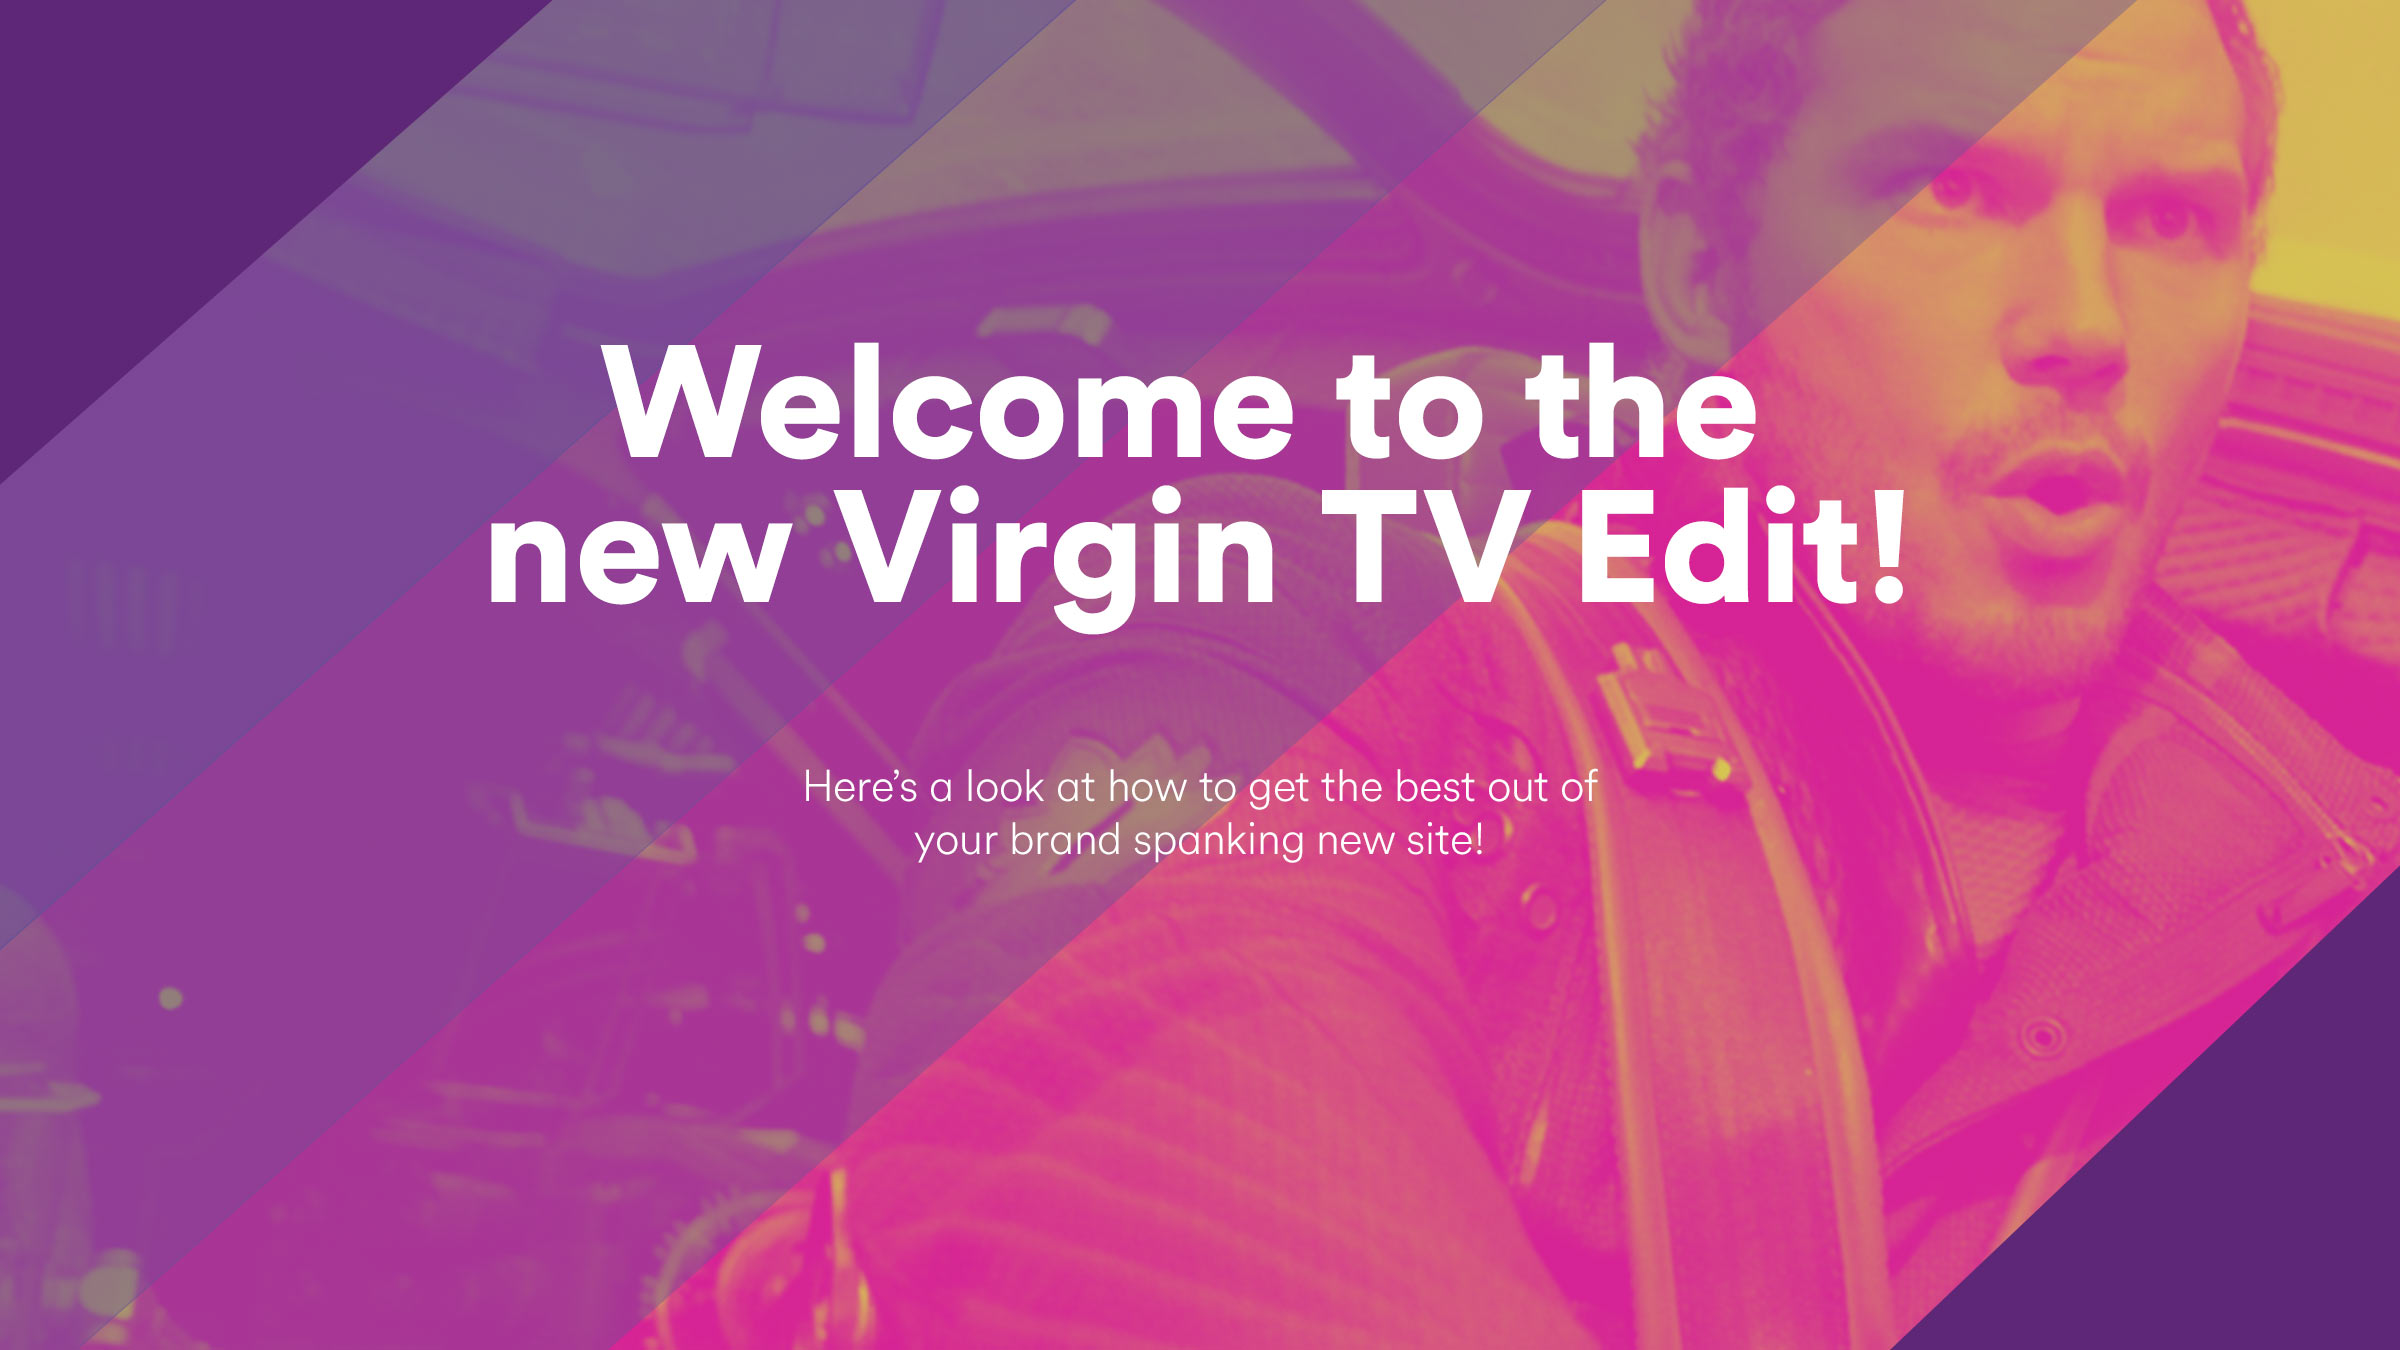 Content strategy & research for launch of new Virgin TV online magazine -